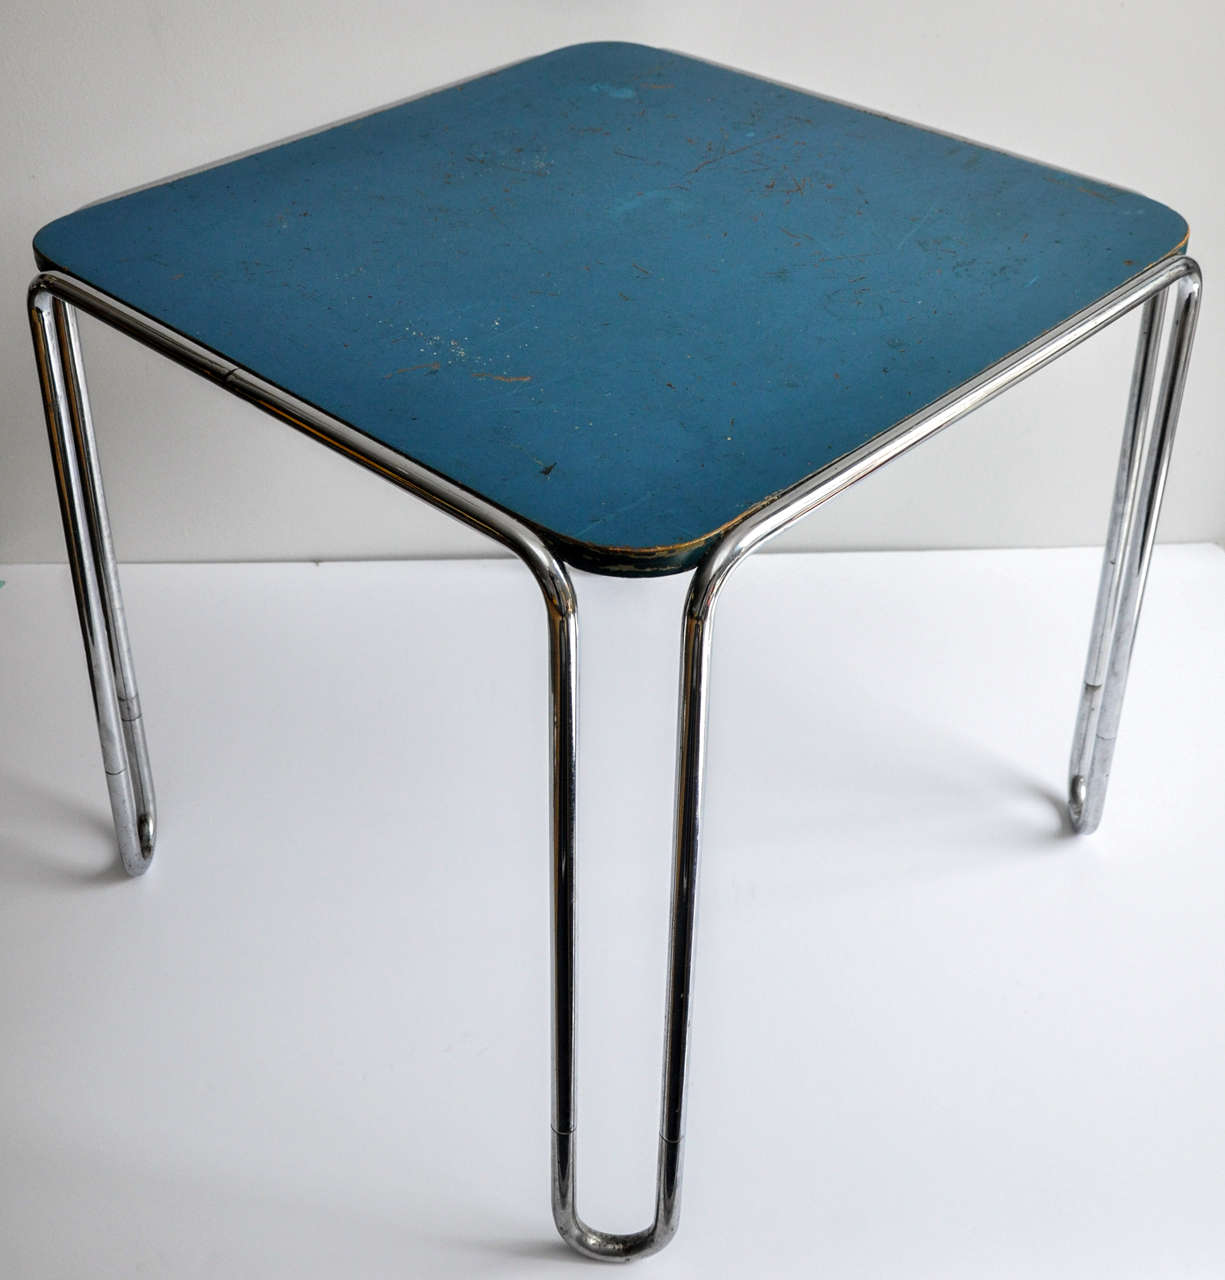 tubular steel table b10 by marcel breuer bauhaus at 1stdibs. Black Bedroom Furniture Sets. Home Design Ideas